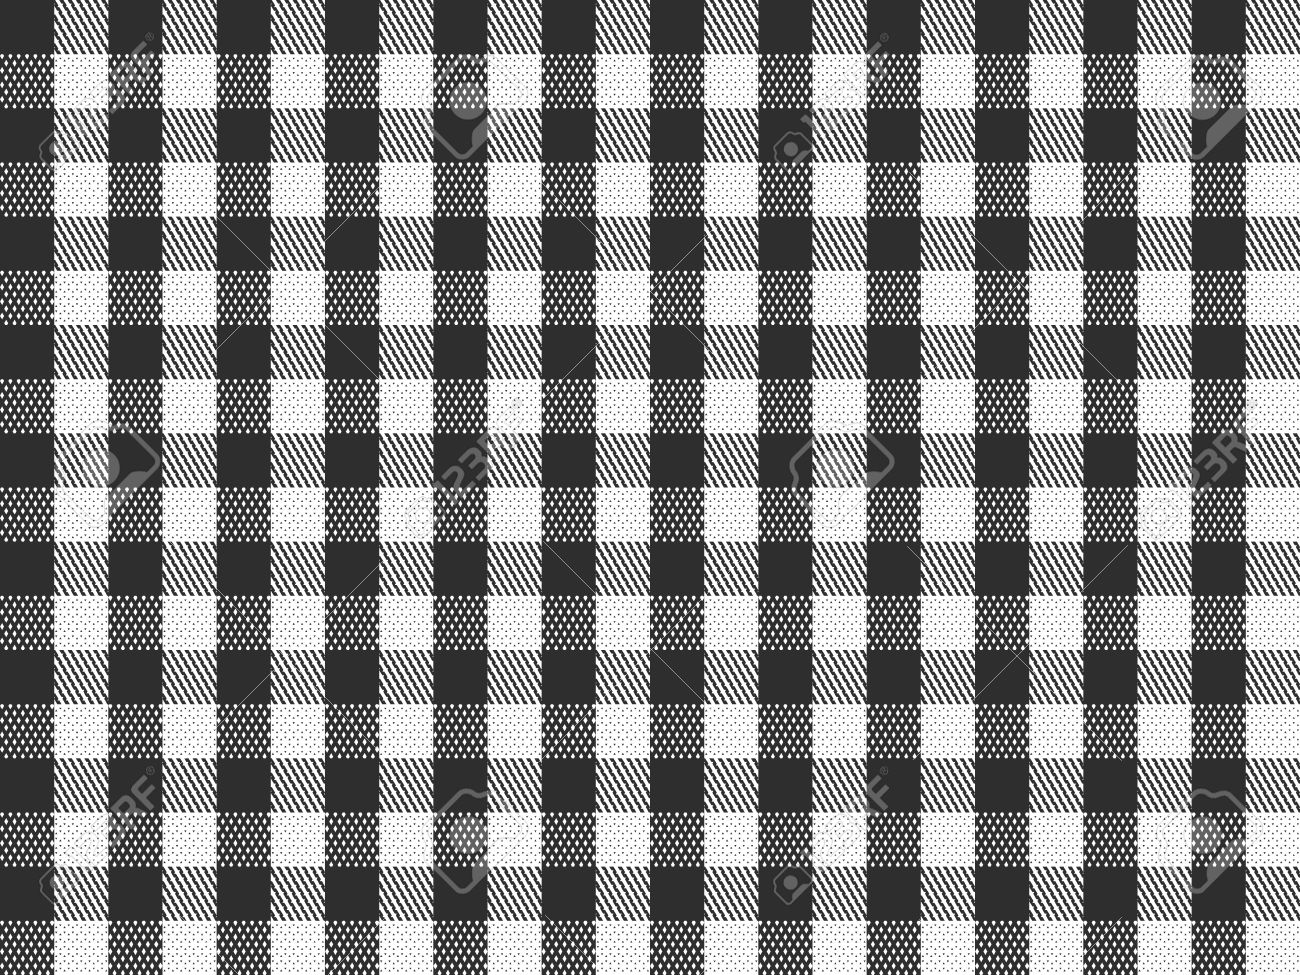 Seamless black and white checkered texture stock images image - A Traditional Plaid Seamless Repeating Checkered Pattern In Black And White Stock Photo